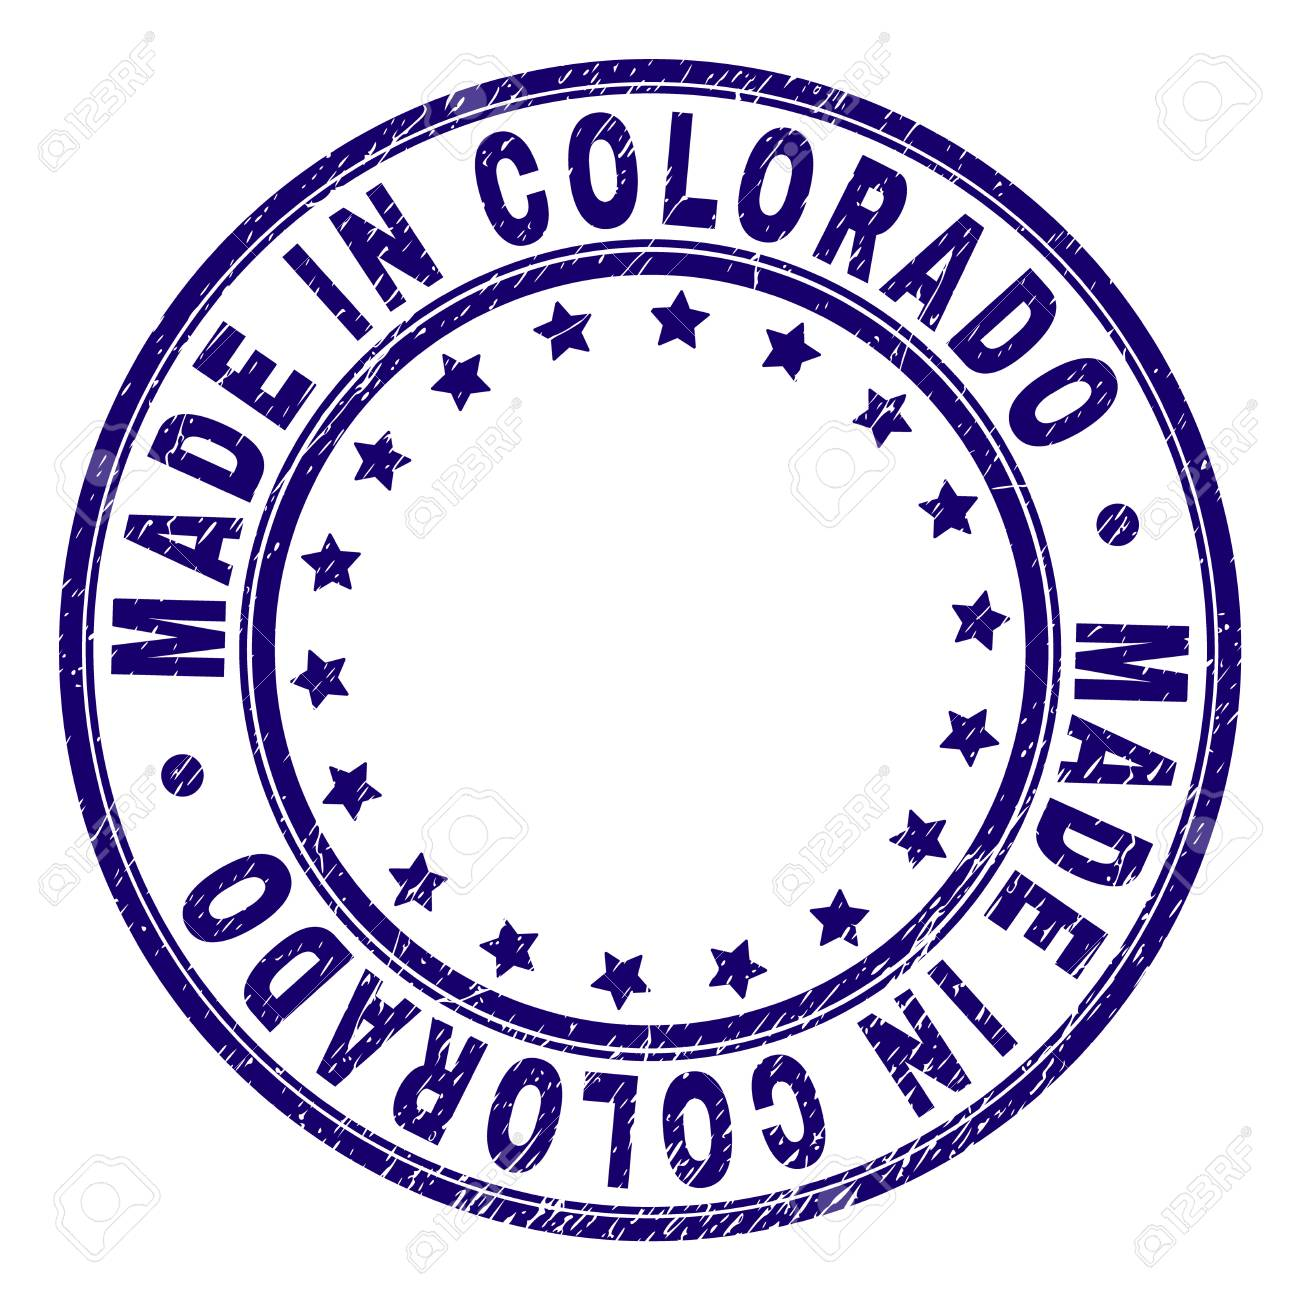 MADE IN COLORADO Stamp Seal Watermark With Grunge Texture Designed Round Shapes And Stars